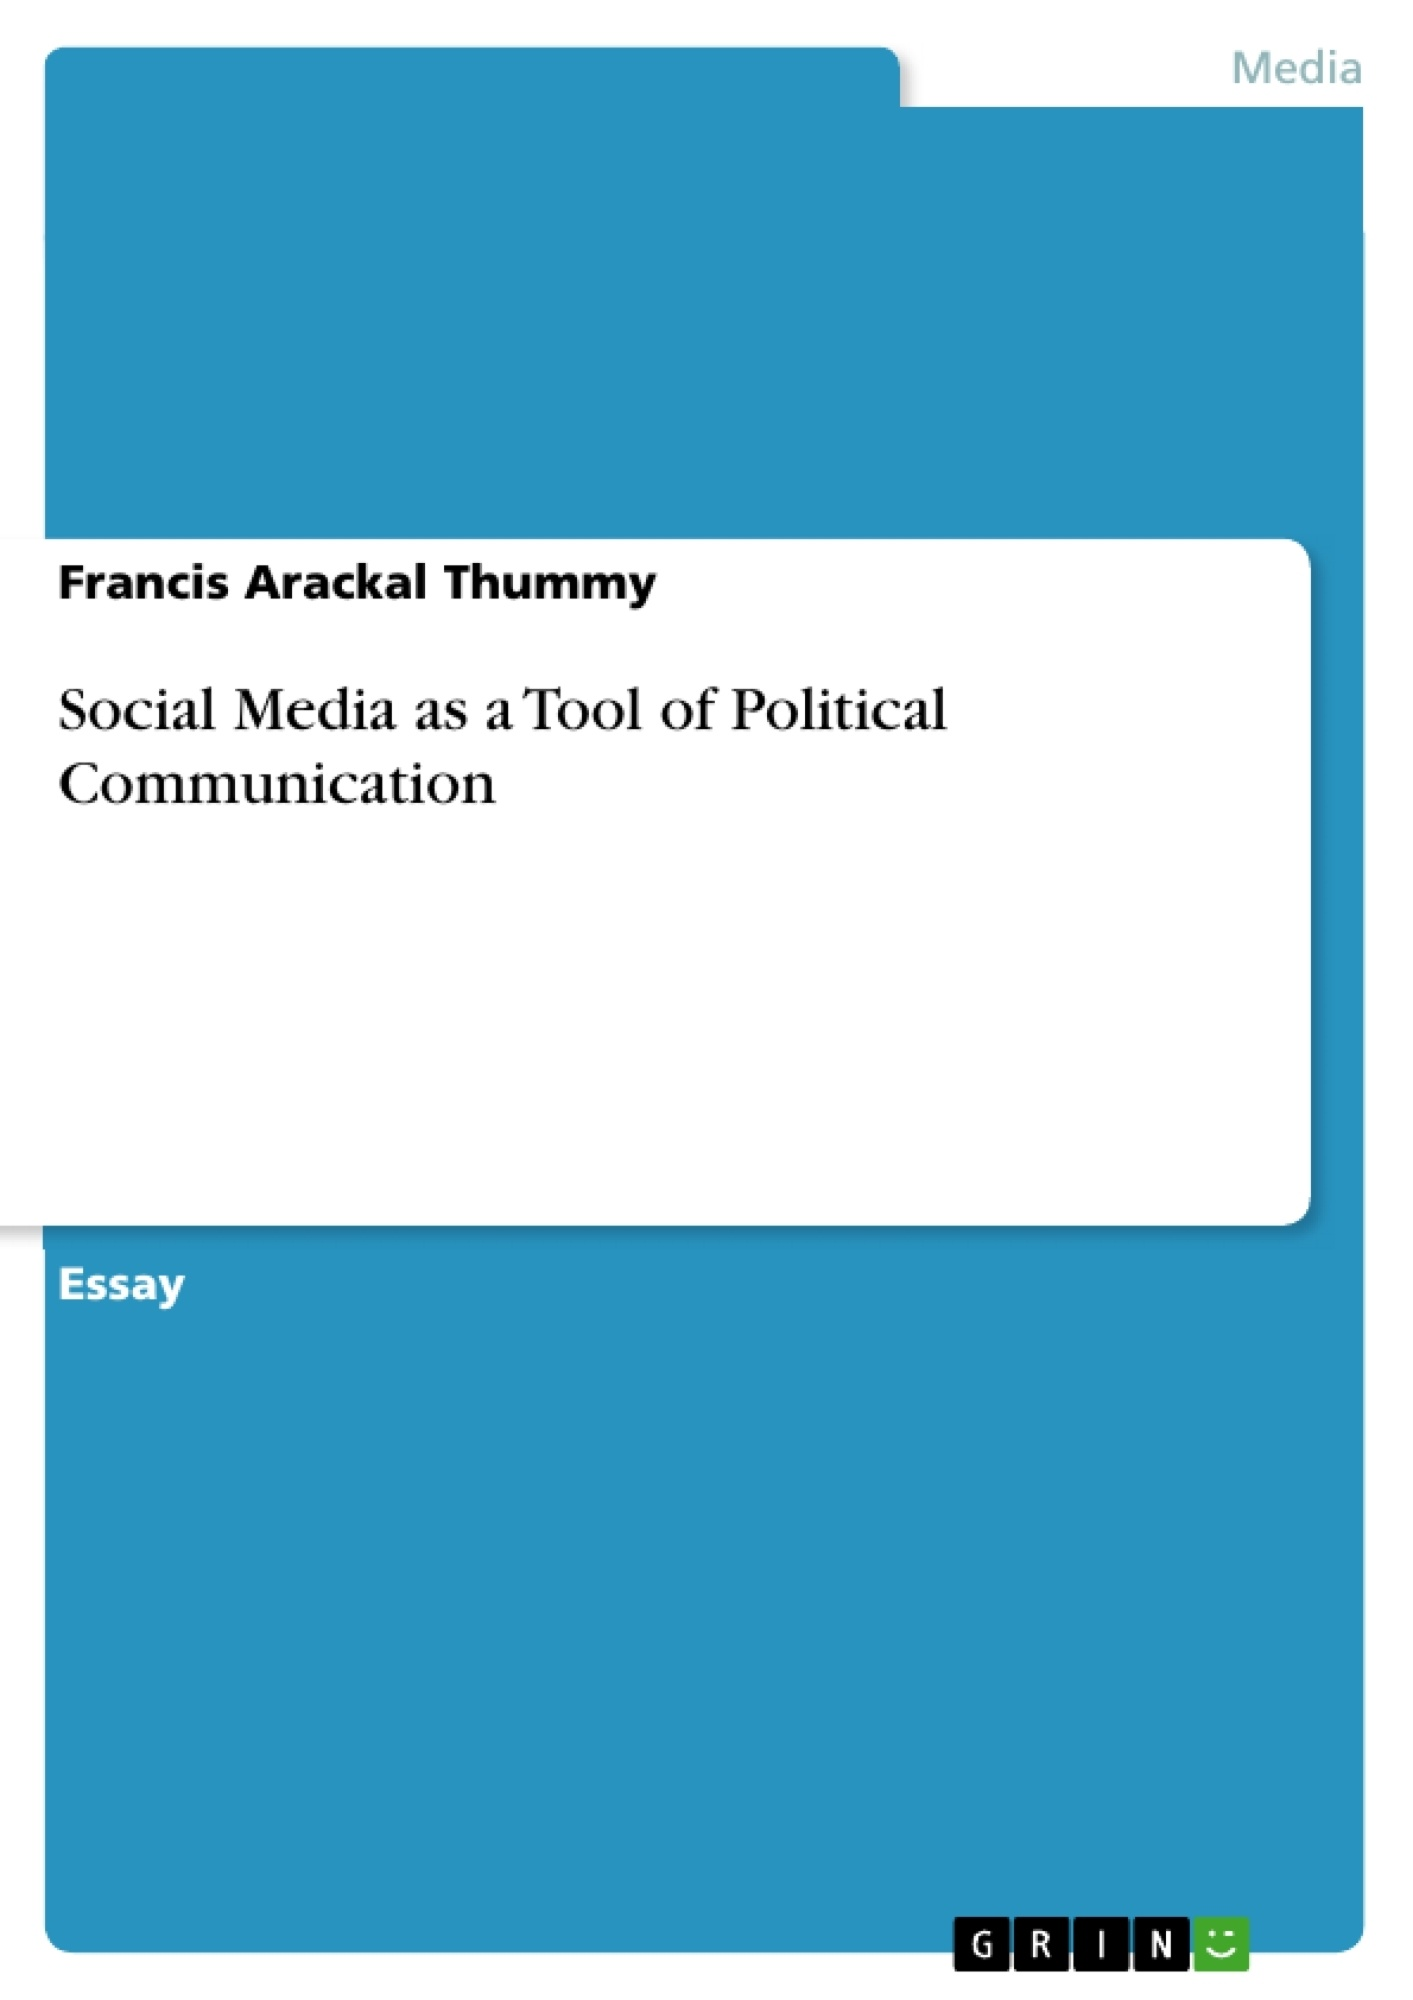 Title: Social Media as a Tool of Political Communication